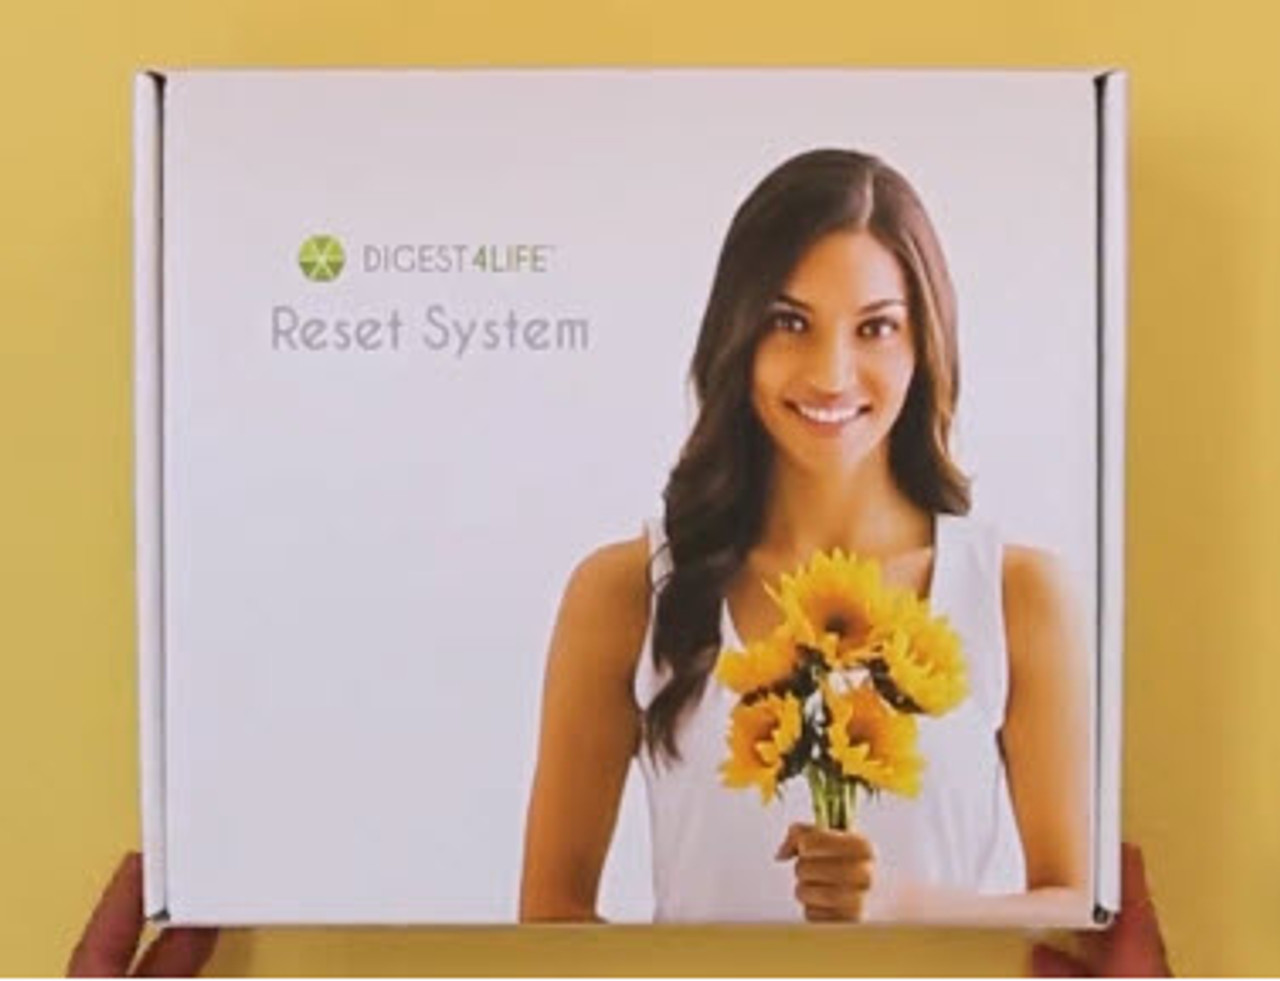 Digest 4Life Cleanse & Reset System